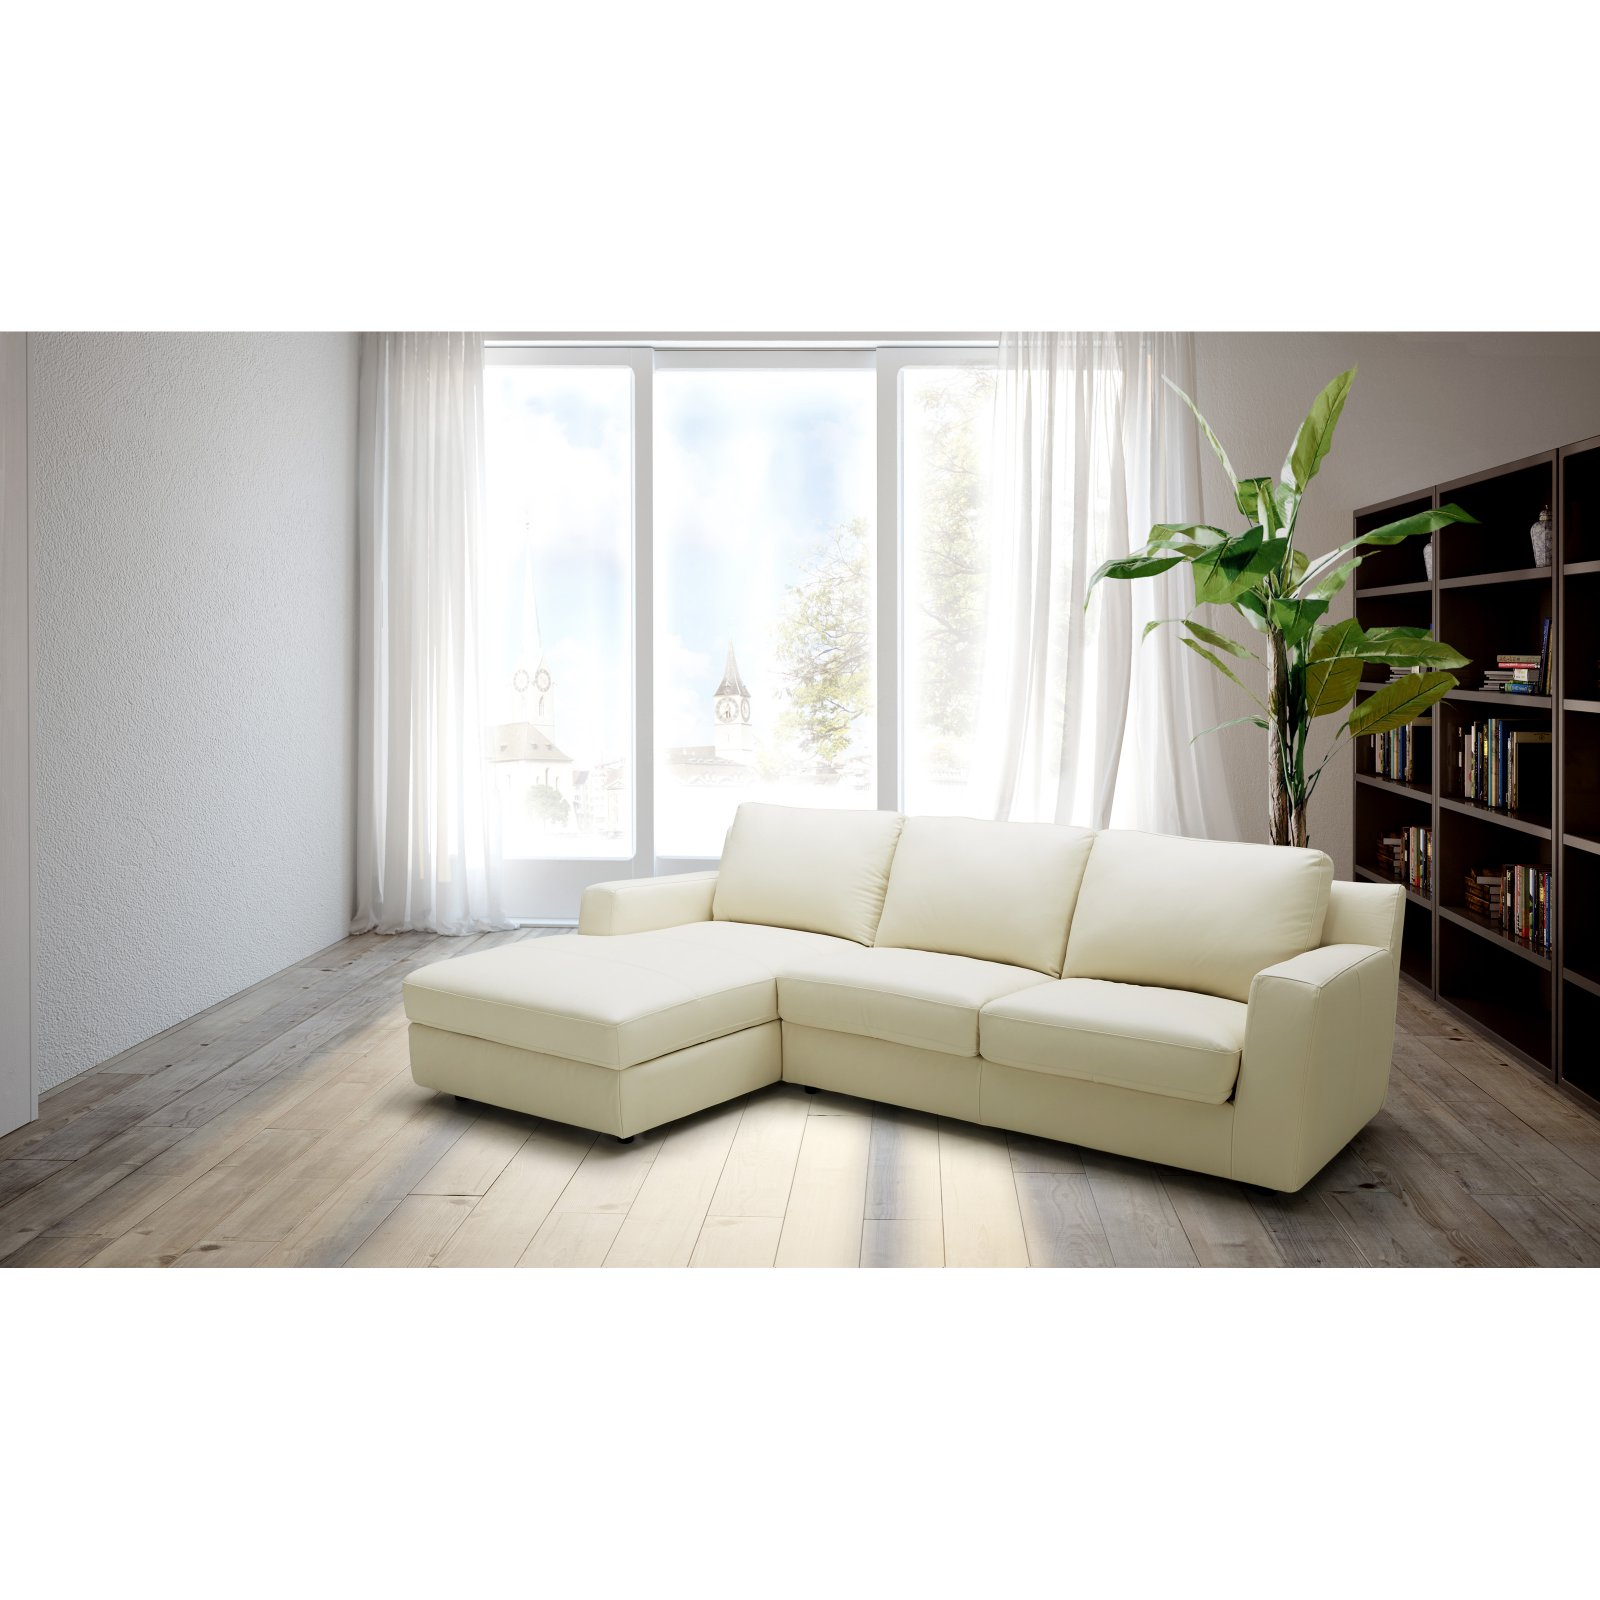 Ju0026amp;M Furniture Jenny Chaise Sectional Sofa